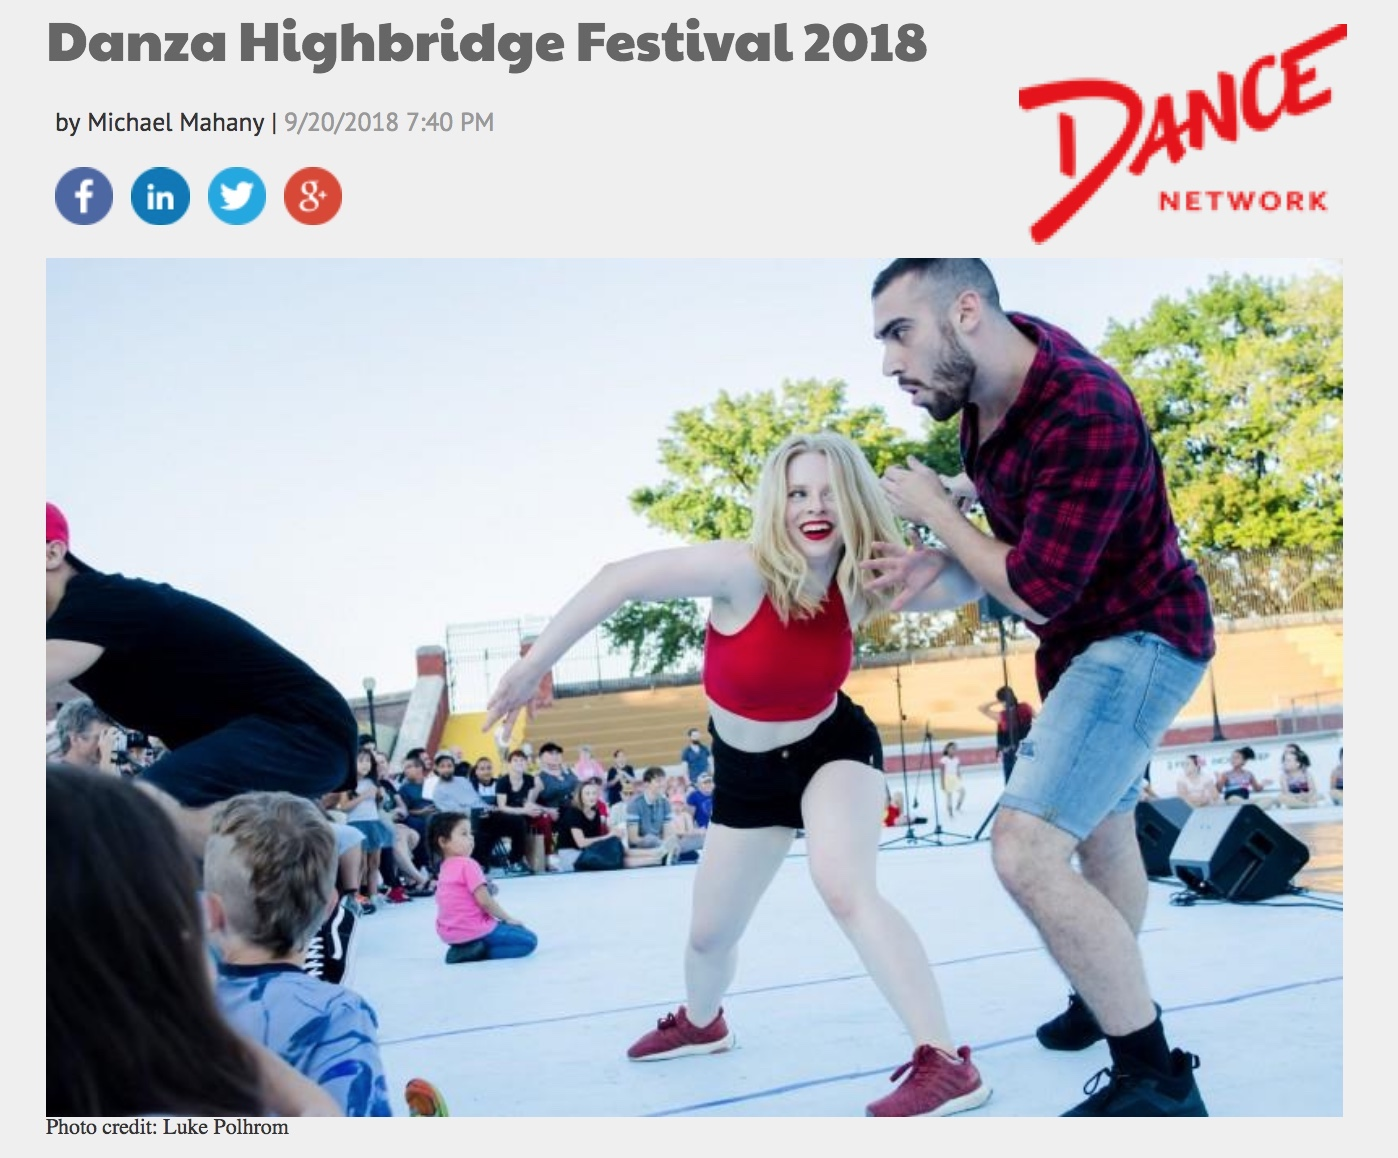 """ThruLines Featured on Dance Network! - """"The United Palace of Cultural Arts is gearing up for the third annual Danza Highbridge Festival on September 22nd. The, now yearly, late summer outdoor dance festival takes place in the drained Highbridge Park swimming pool, in the Washington Heights neighborhood of upper Manhattan. Cassie Nordgren, a remarkable New York City choreographer, brings her passion for sharing and celebrating dance with the uptown community and curates the concert…"""""""